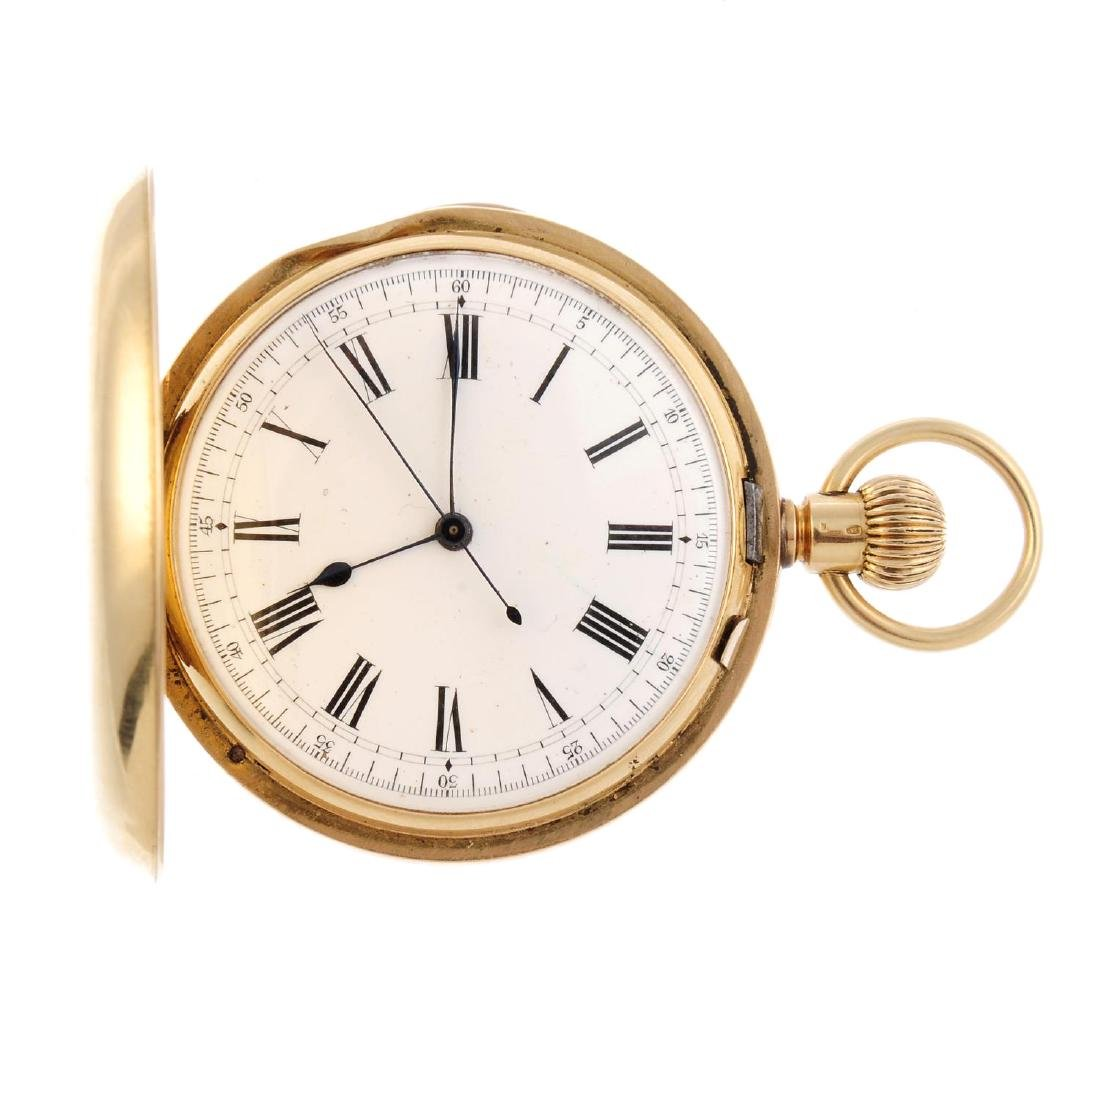 A full hunter repeater pocket watch. Yellow metal